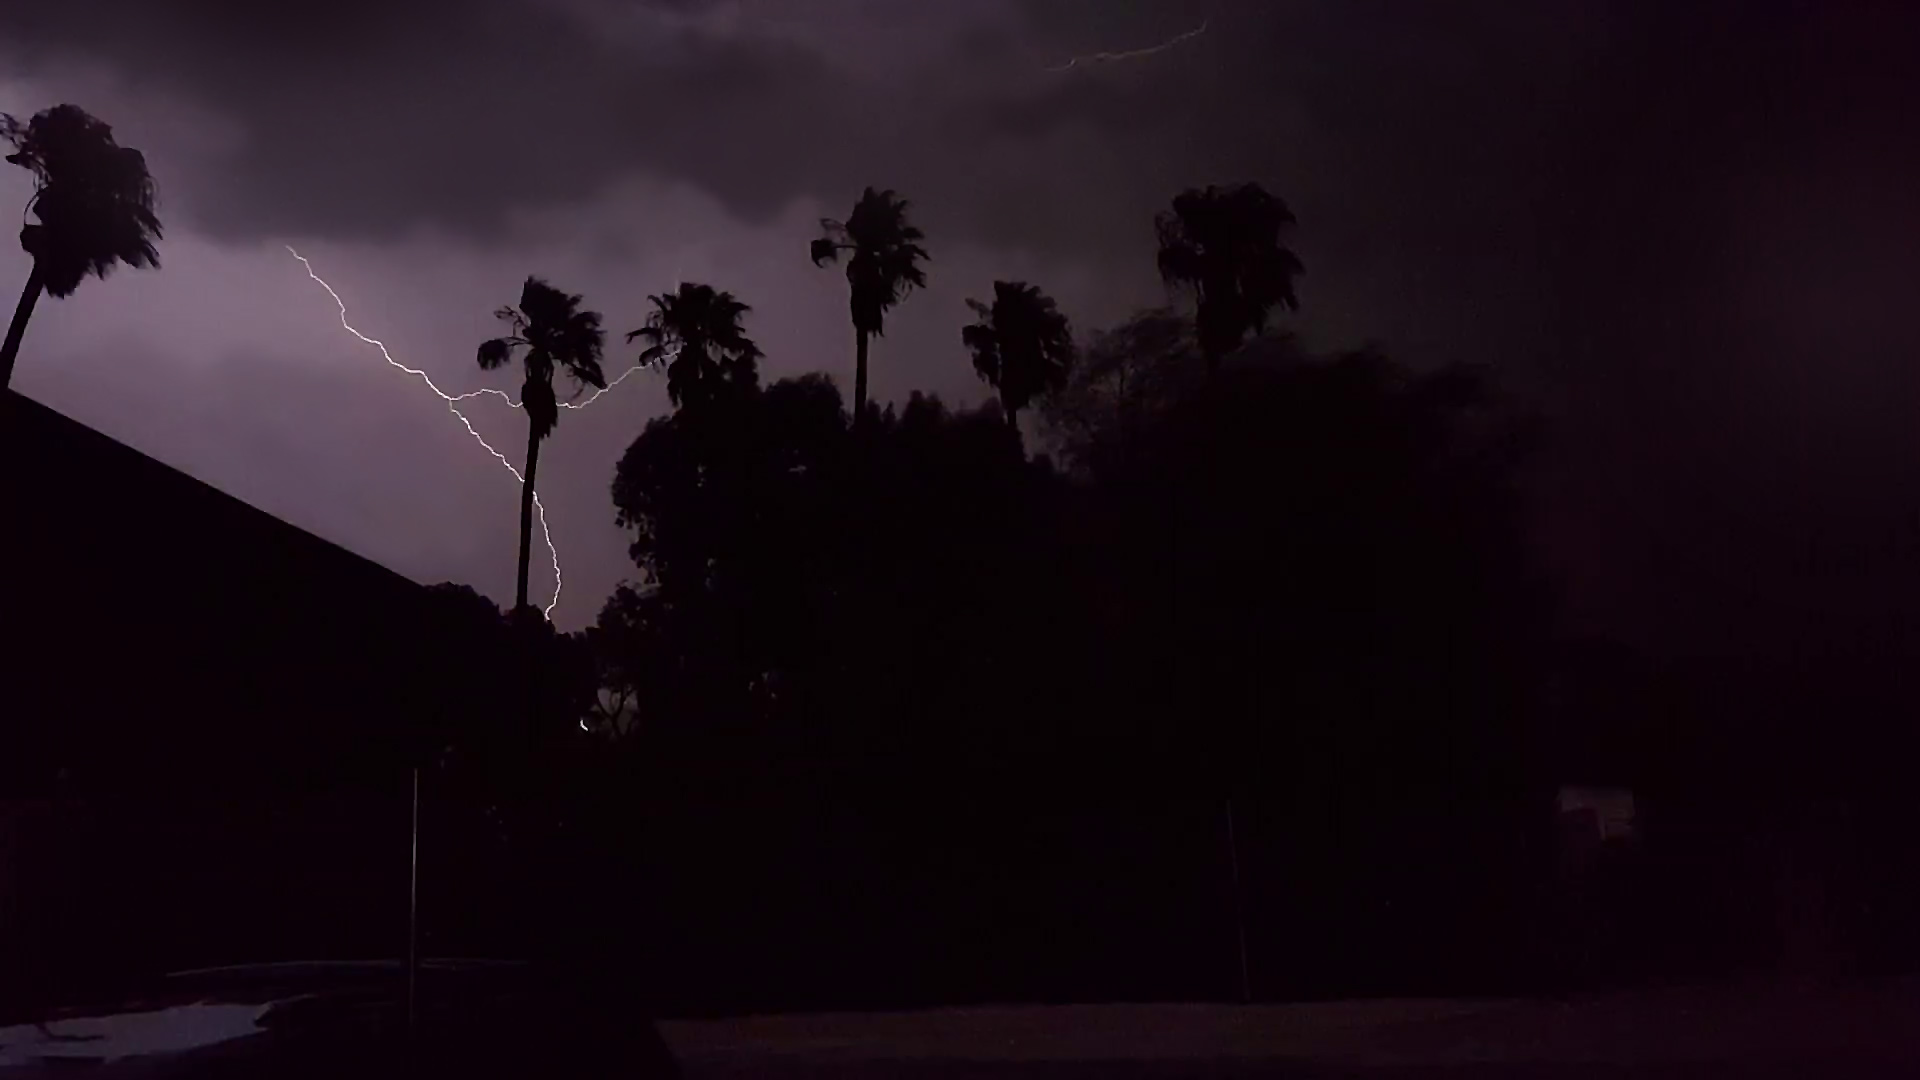 Lightning from a monsoon storm silhouettes palm trees against a dark sky. From July 2017.